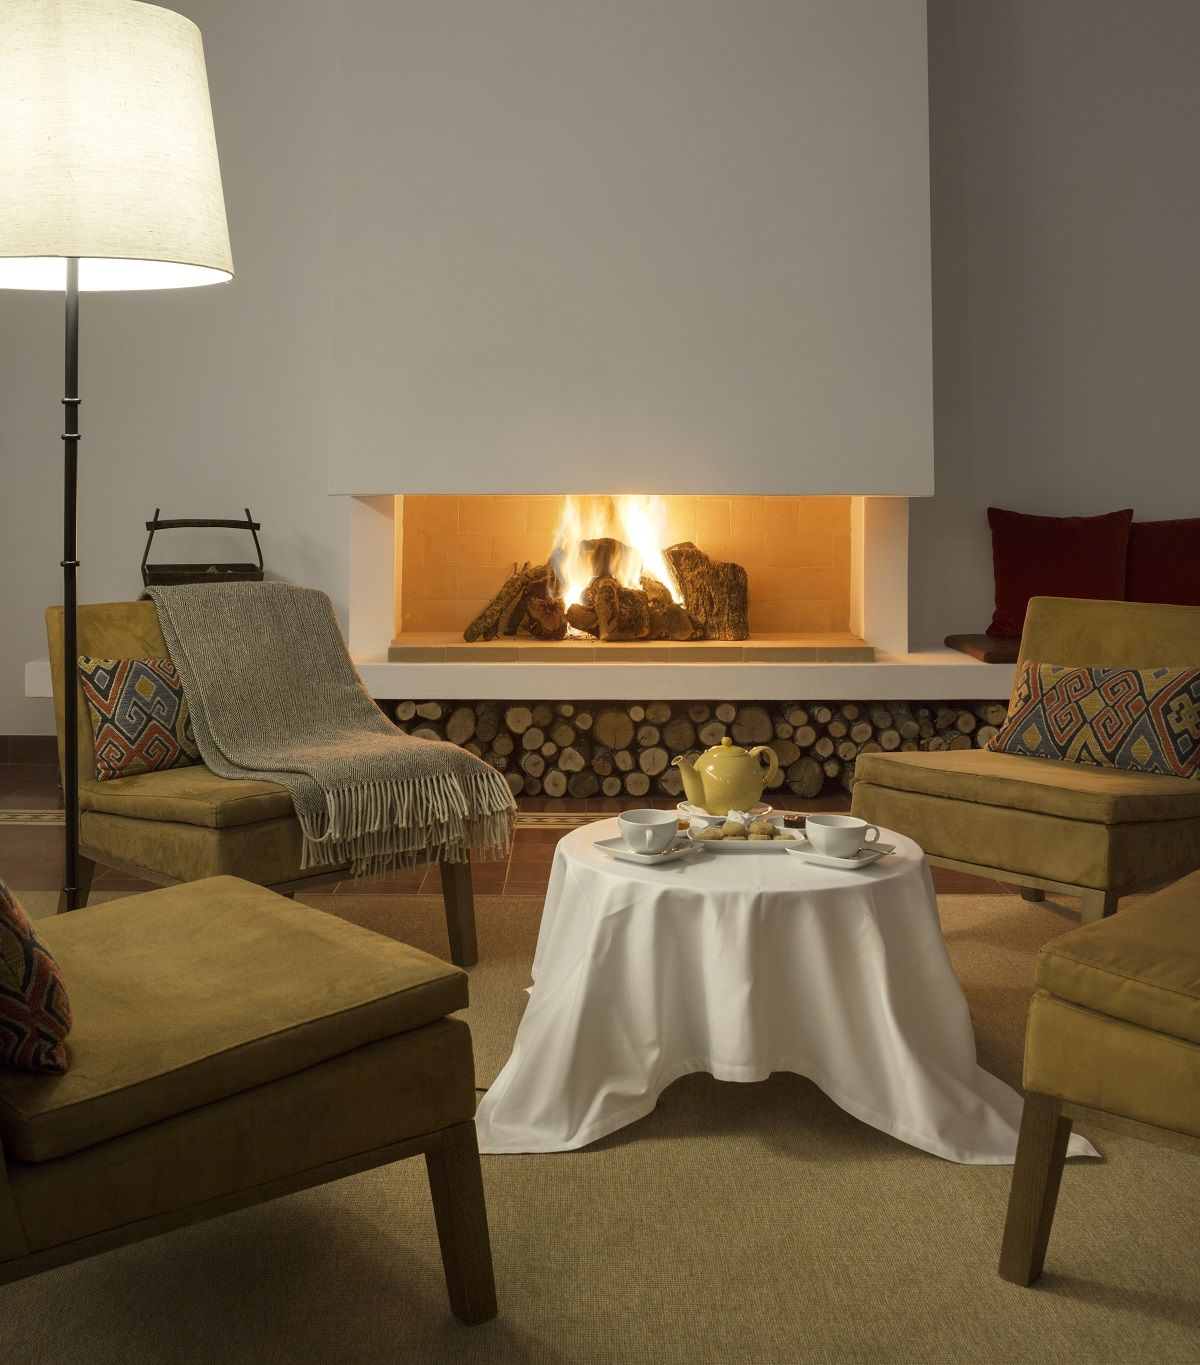 Cozy tea room with fireplace